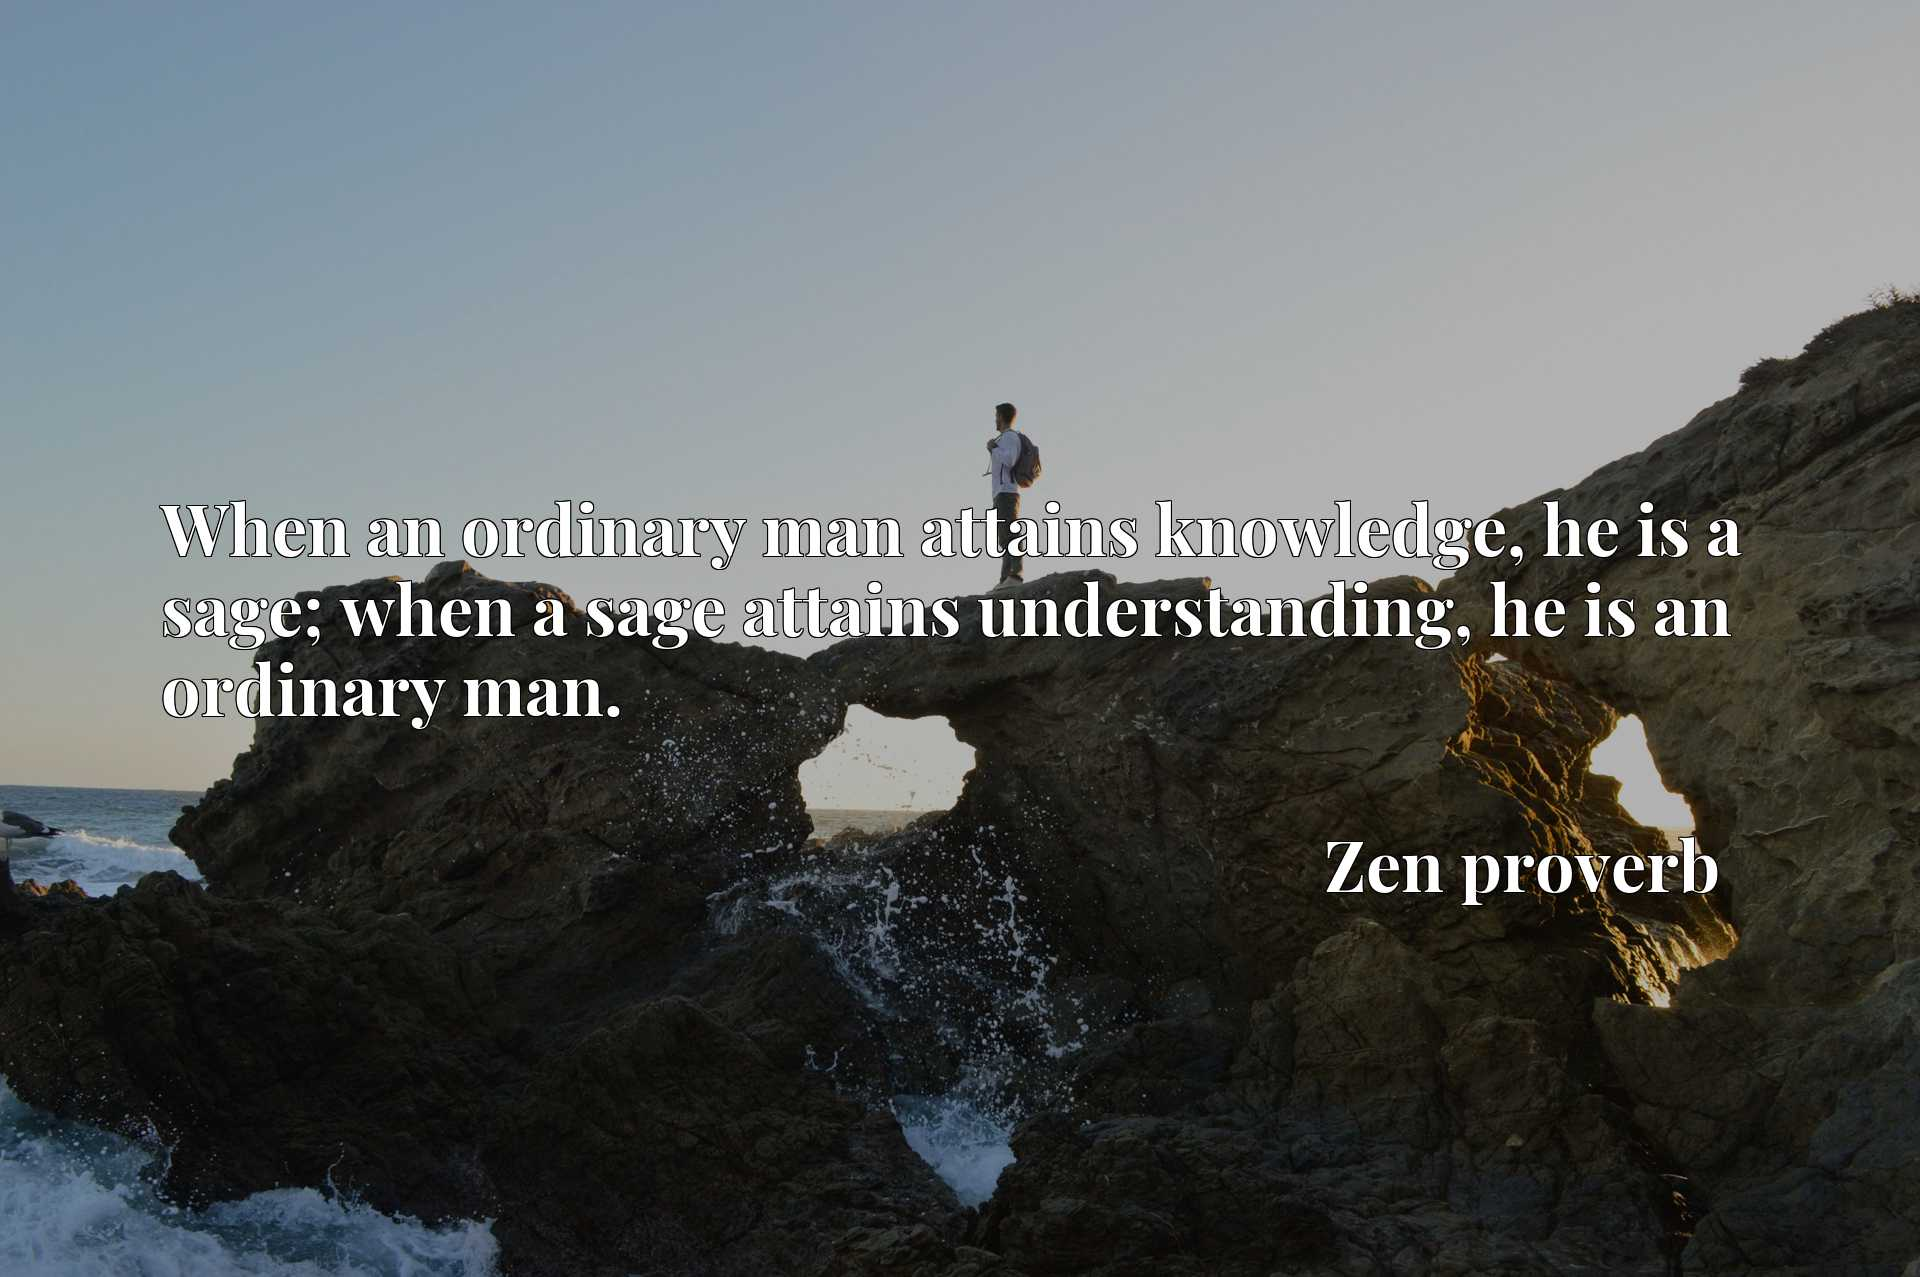 When an ordinary man attains knowledge, he is a sage; when a sage attains understanding, he is an ordinary man.